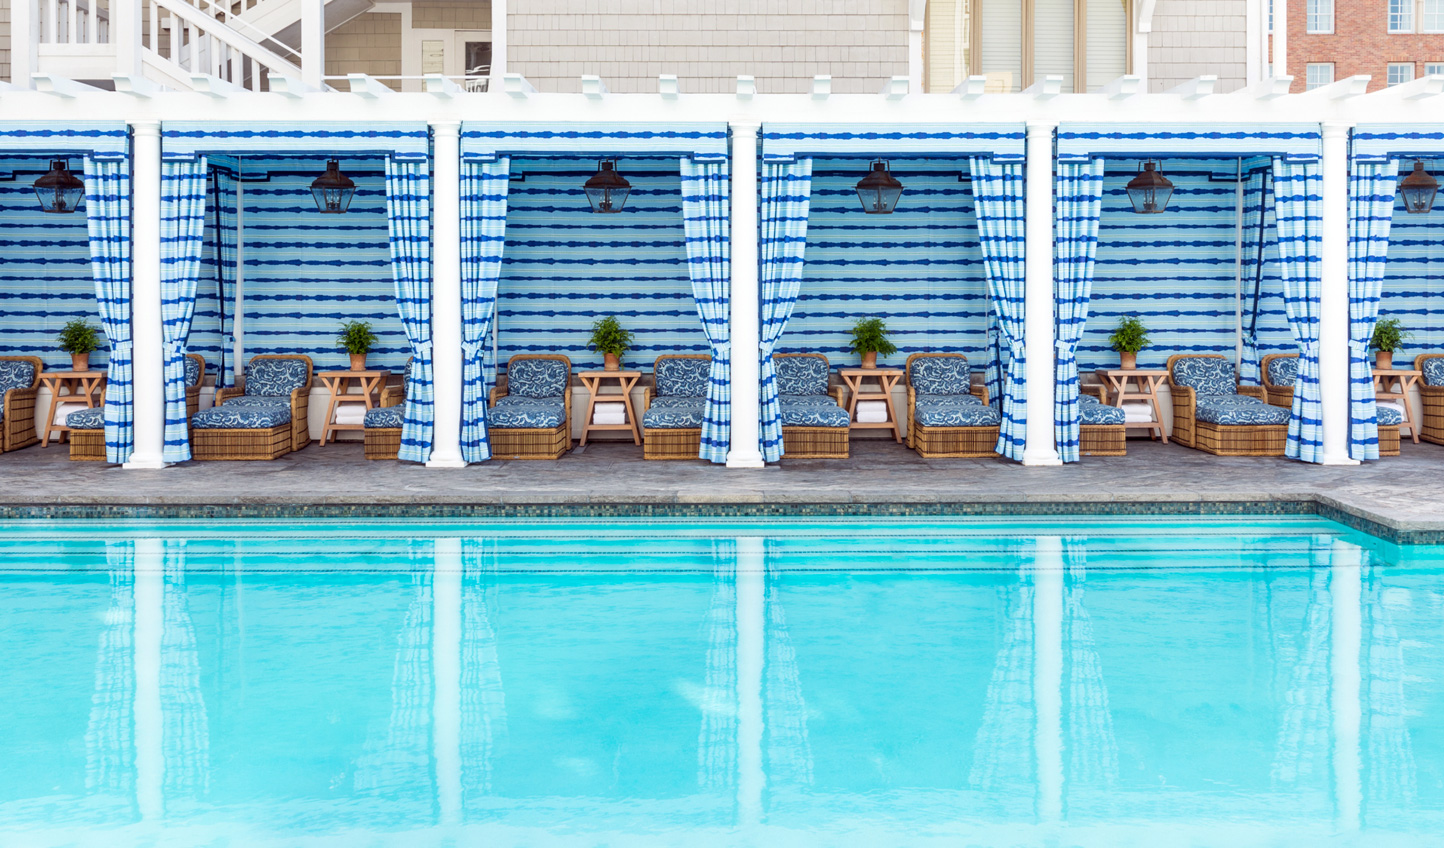 Pick your cabana and settle in for a day of poolside serenity